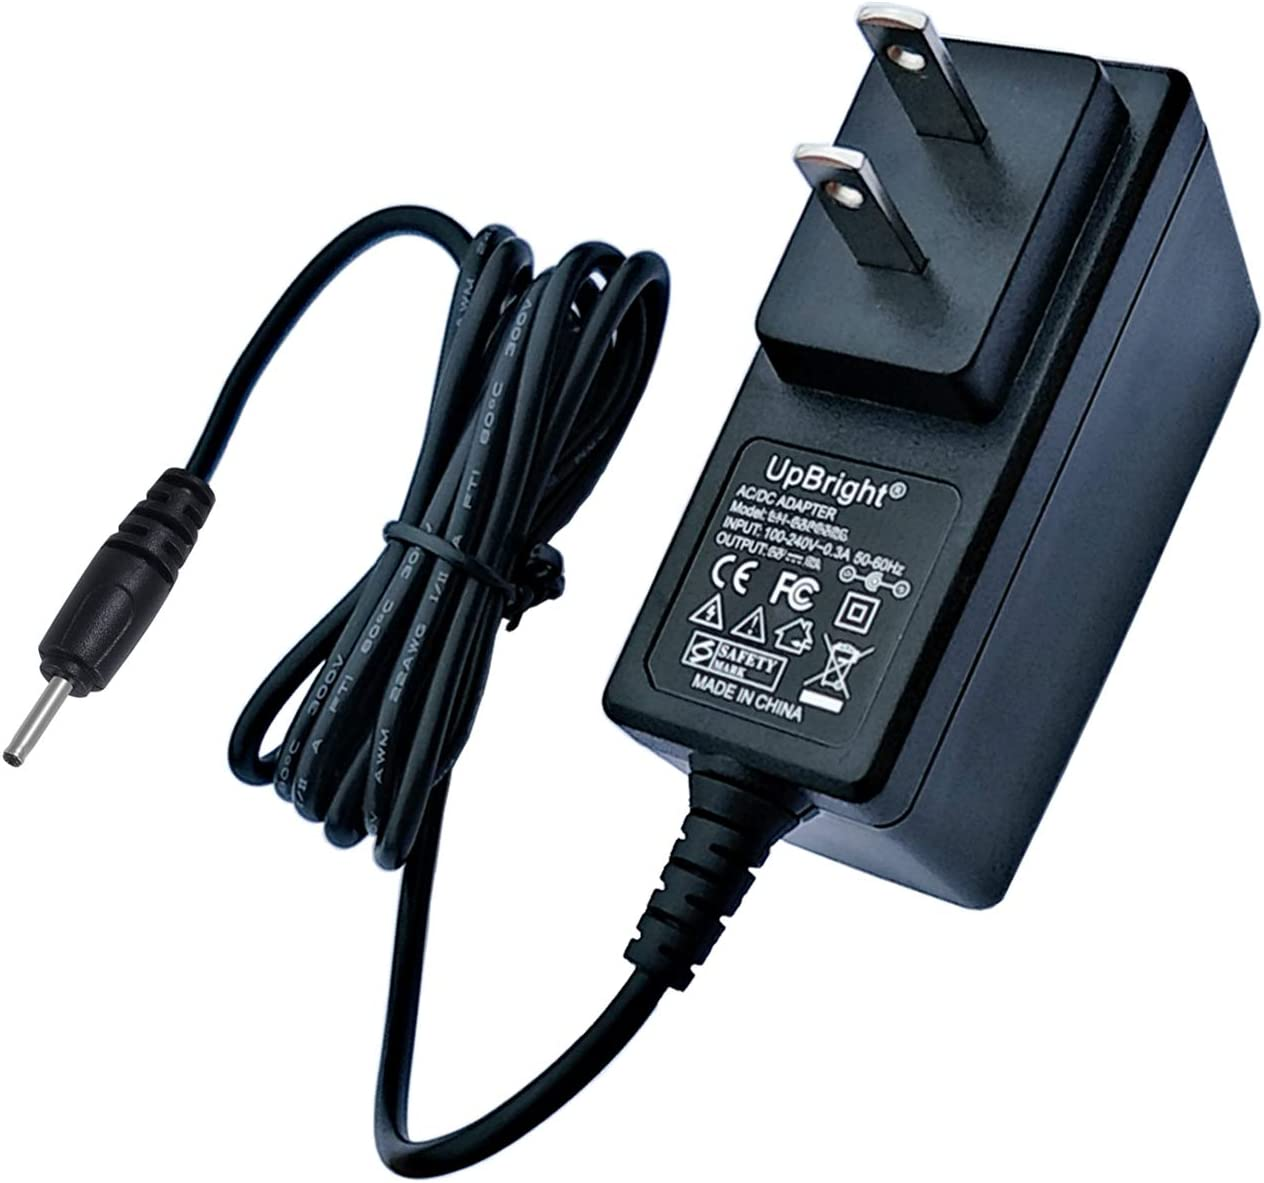 UpBright New Max 90% OFF Global 9V AC DC Directly managed store with Adapter Compatible MID M1006 M